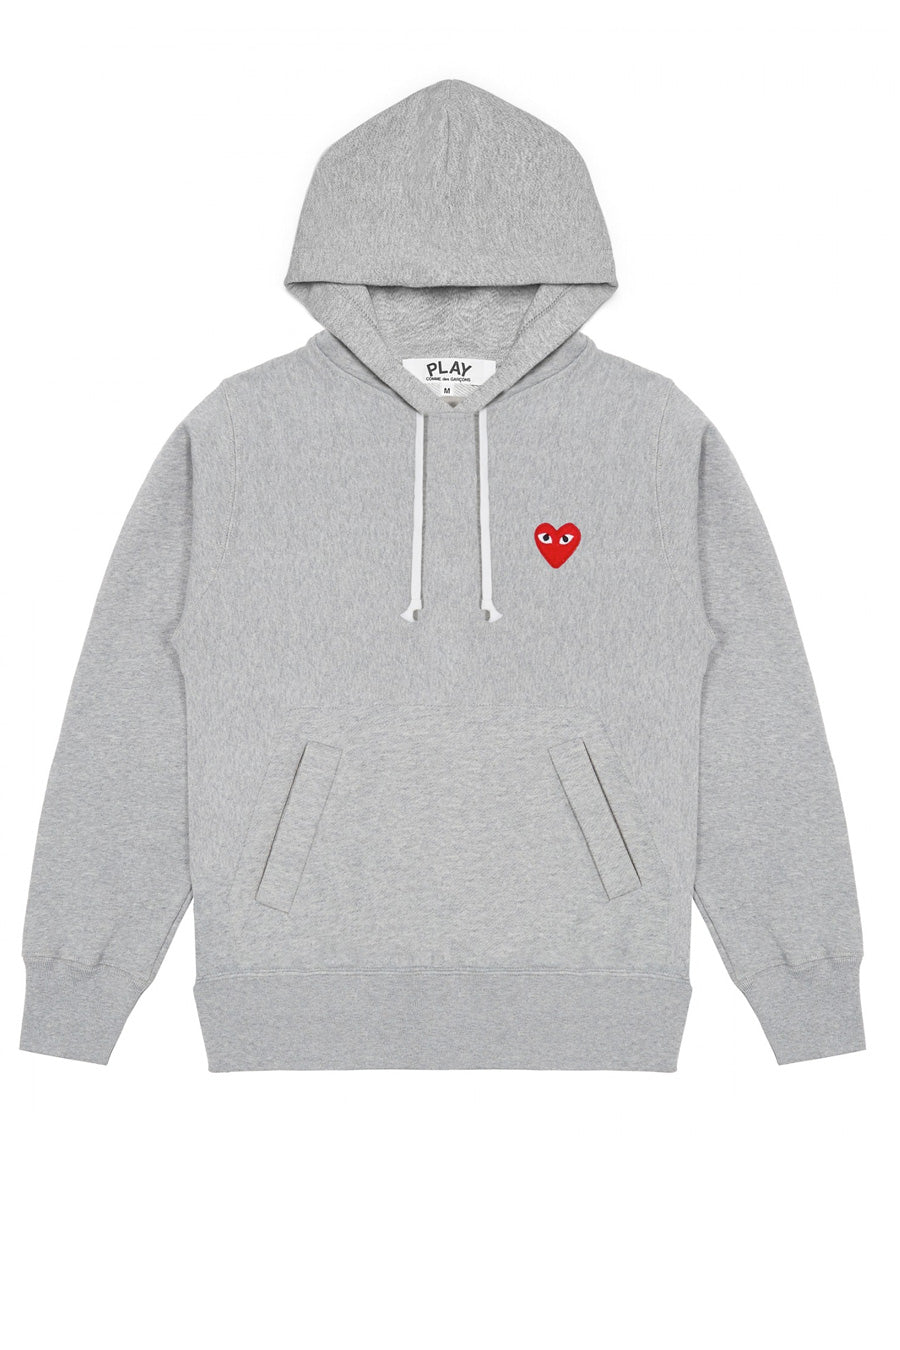 Comme des Garçons PLAY - Grey Play Pullover Hoodie